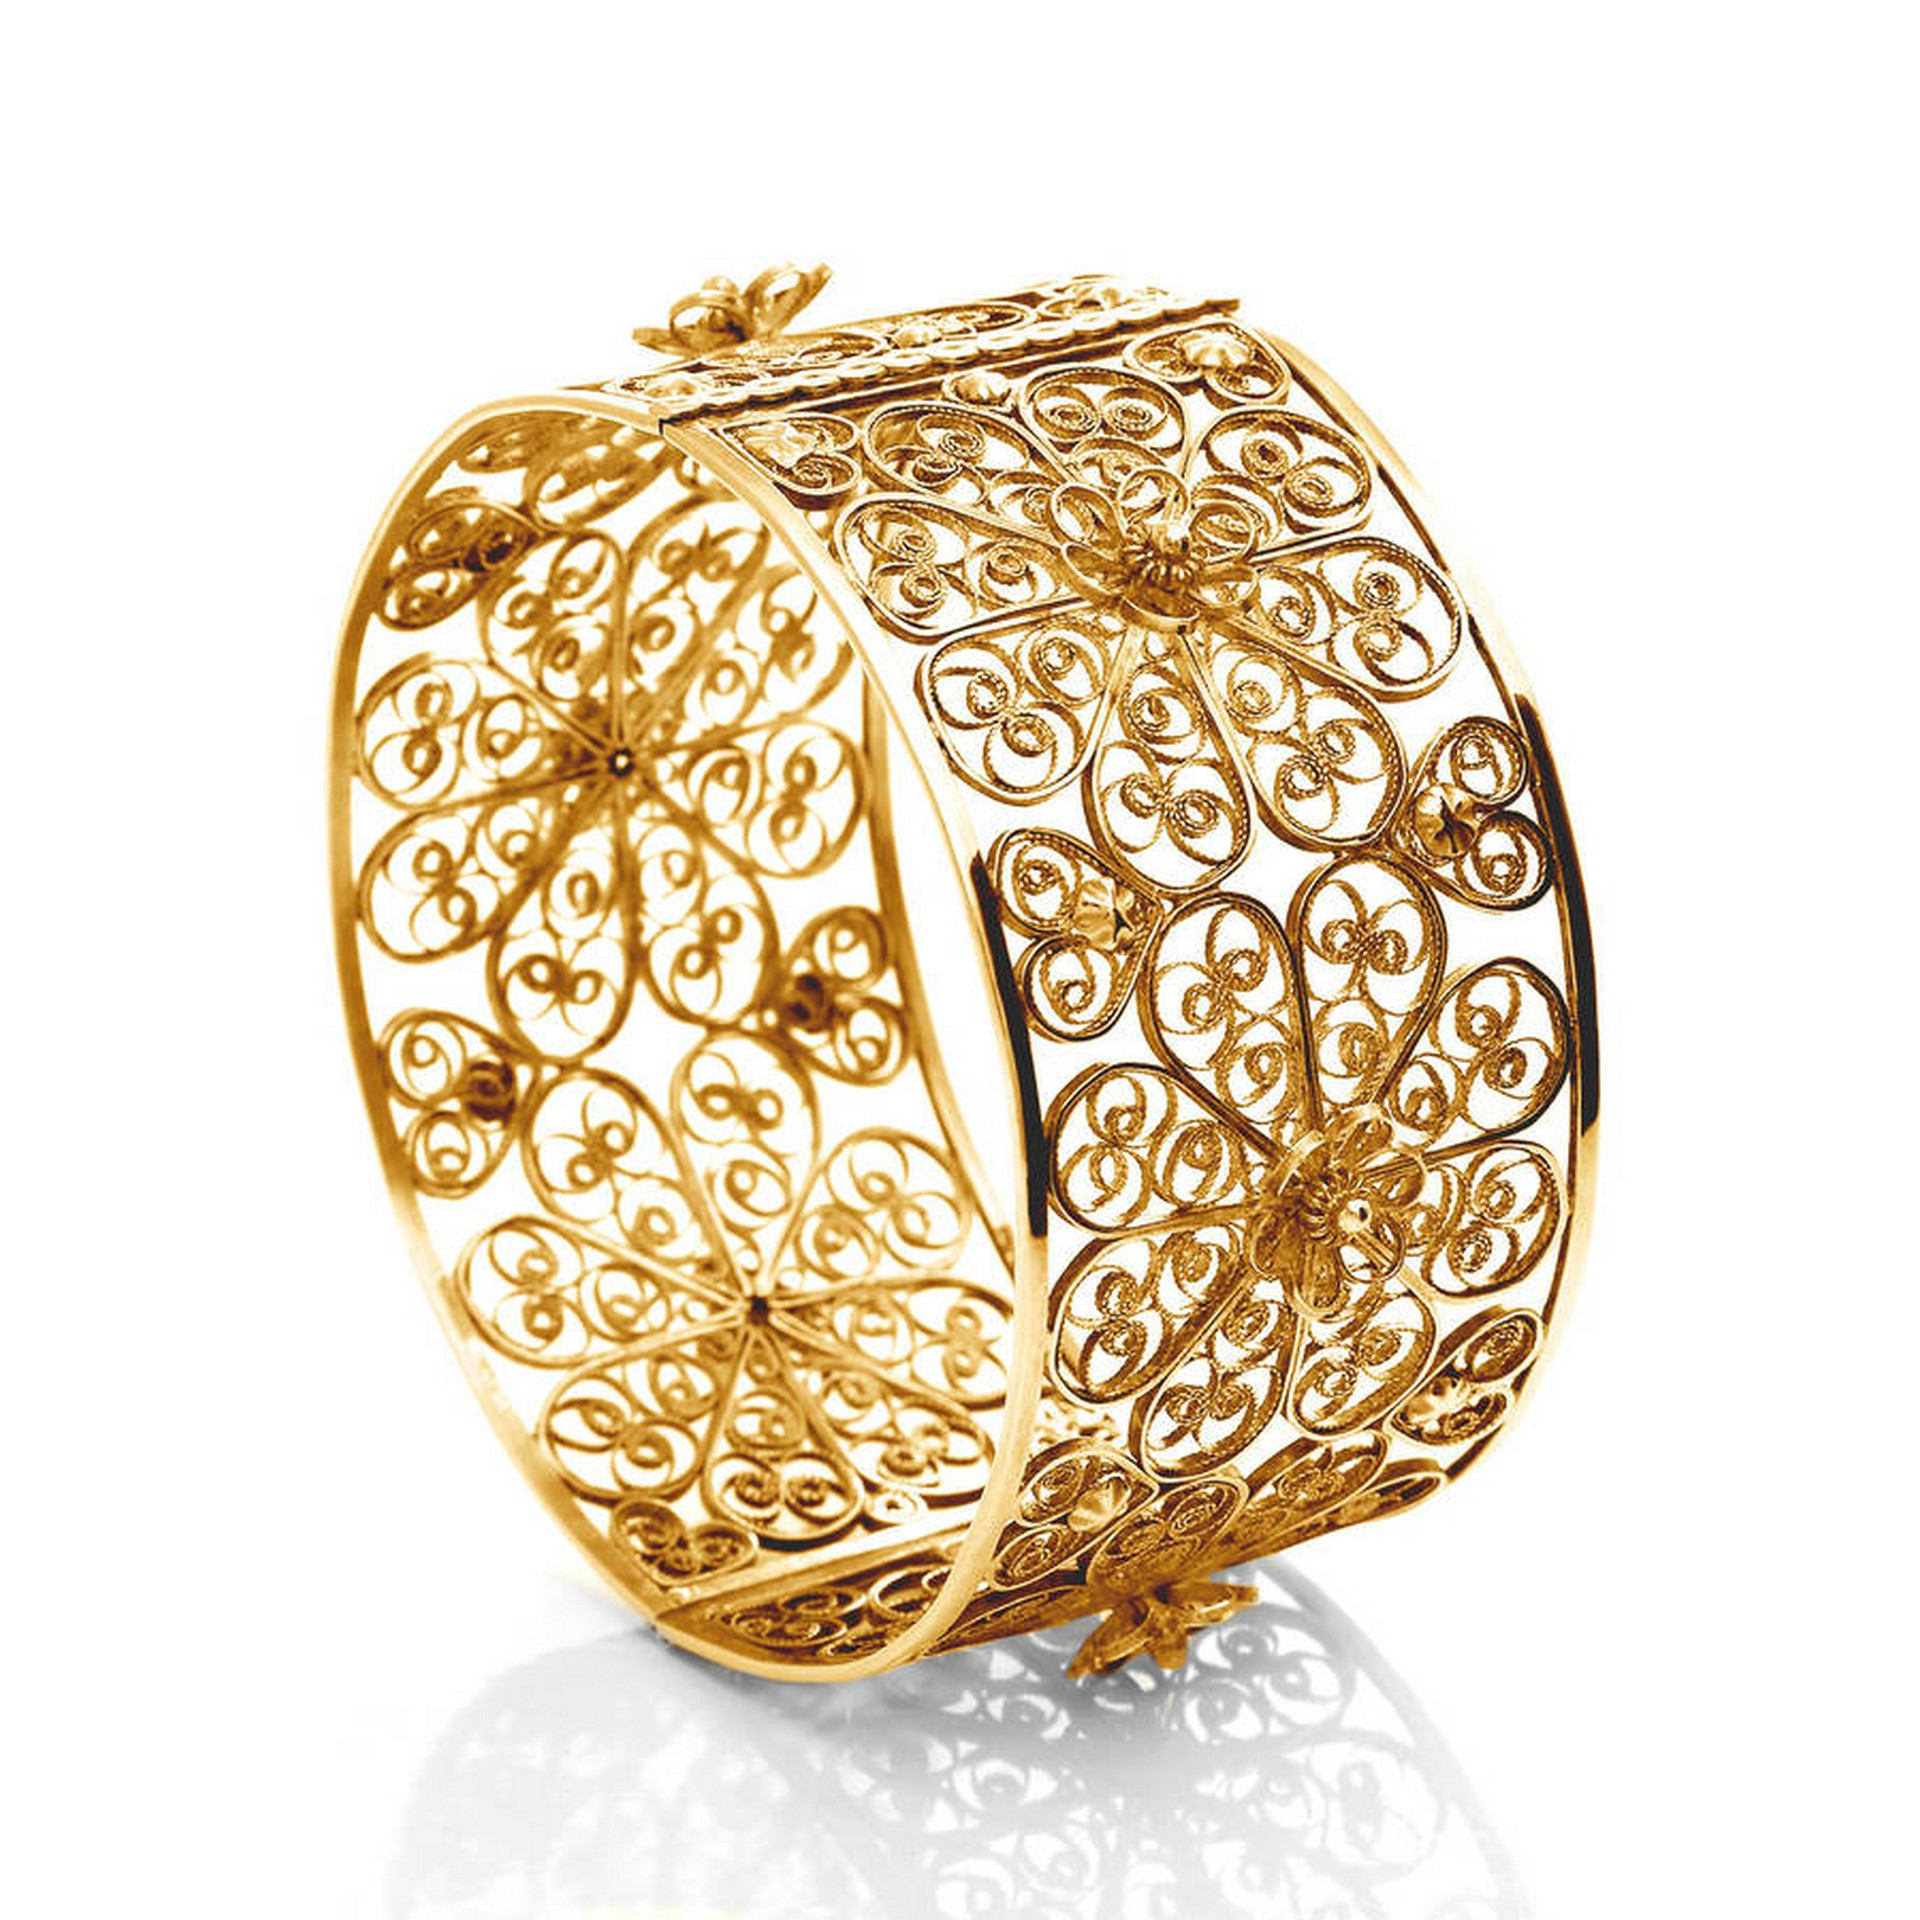 Filigree filigree Filigree and its origin rooted in Portuguese culture Filigree 3